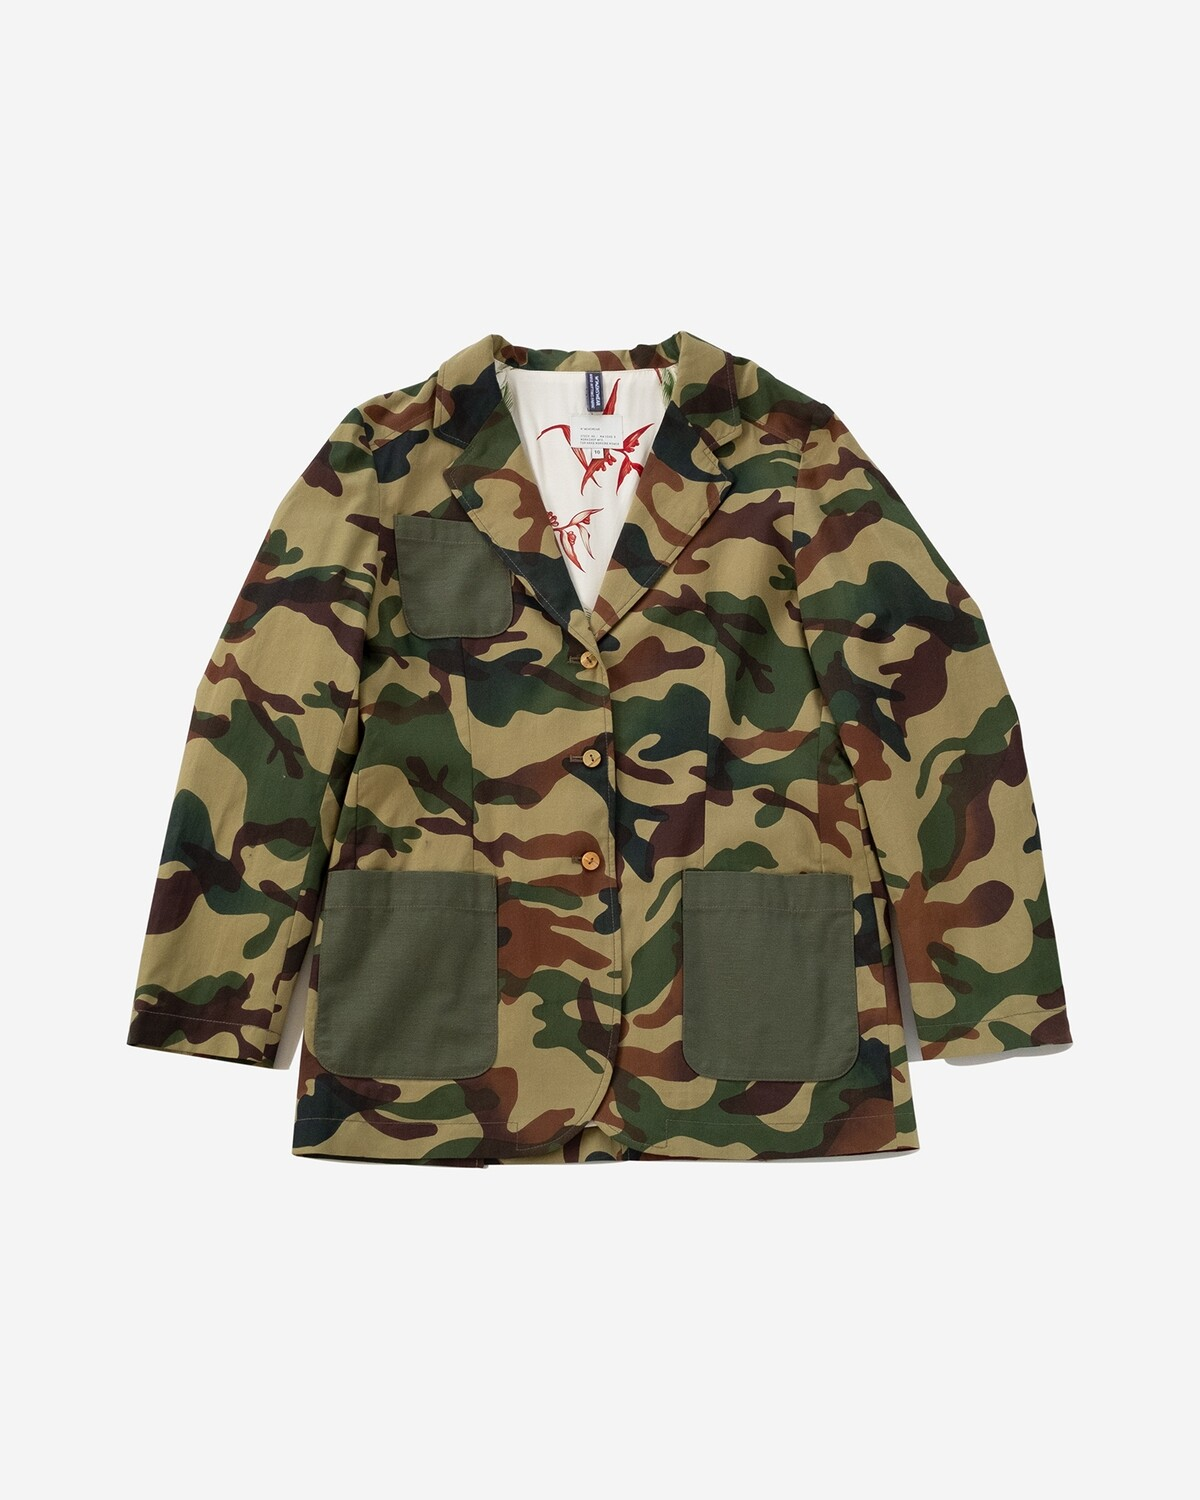 W'MENSWEAR Tropical Blazer in Camo